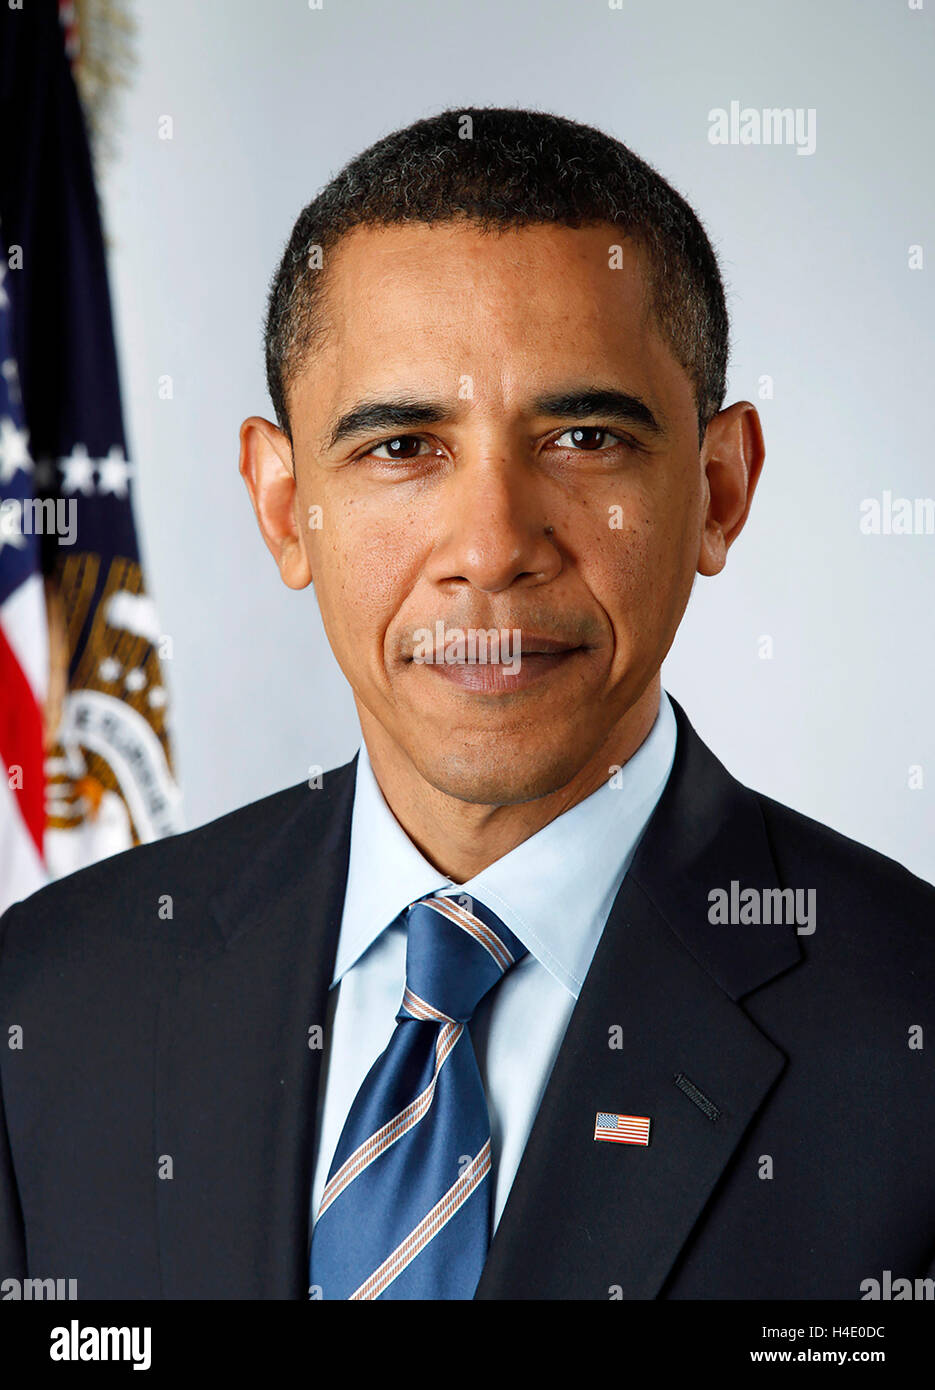 Barack Obama. Official portrait of Barack Obama (b.1961), the 4th President of the USA, taken on January 13th 2009, - Stock Image